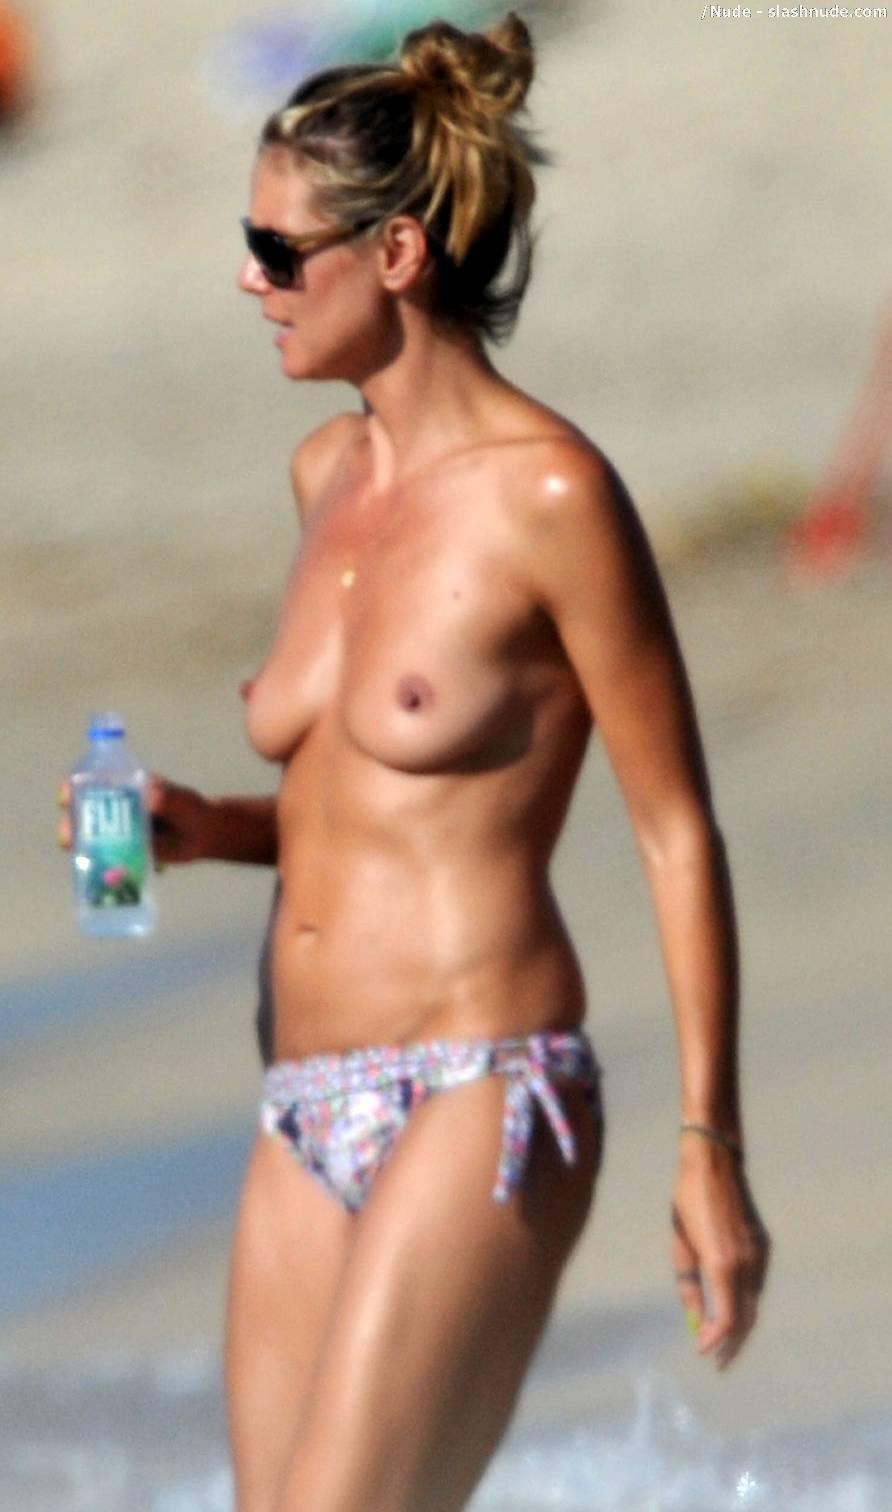 Heidi-Klum-Topless-Beach-Mom-Hard-At-Work-3880-14-7773